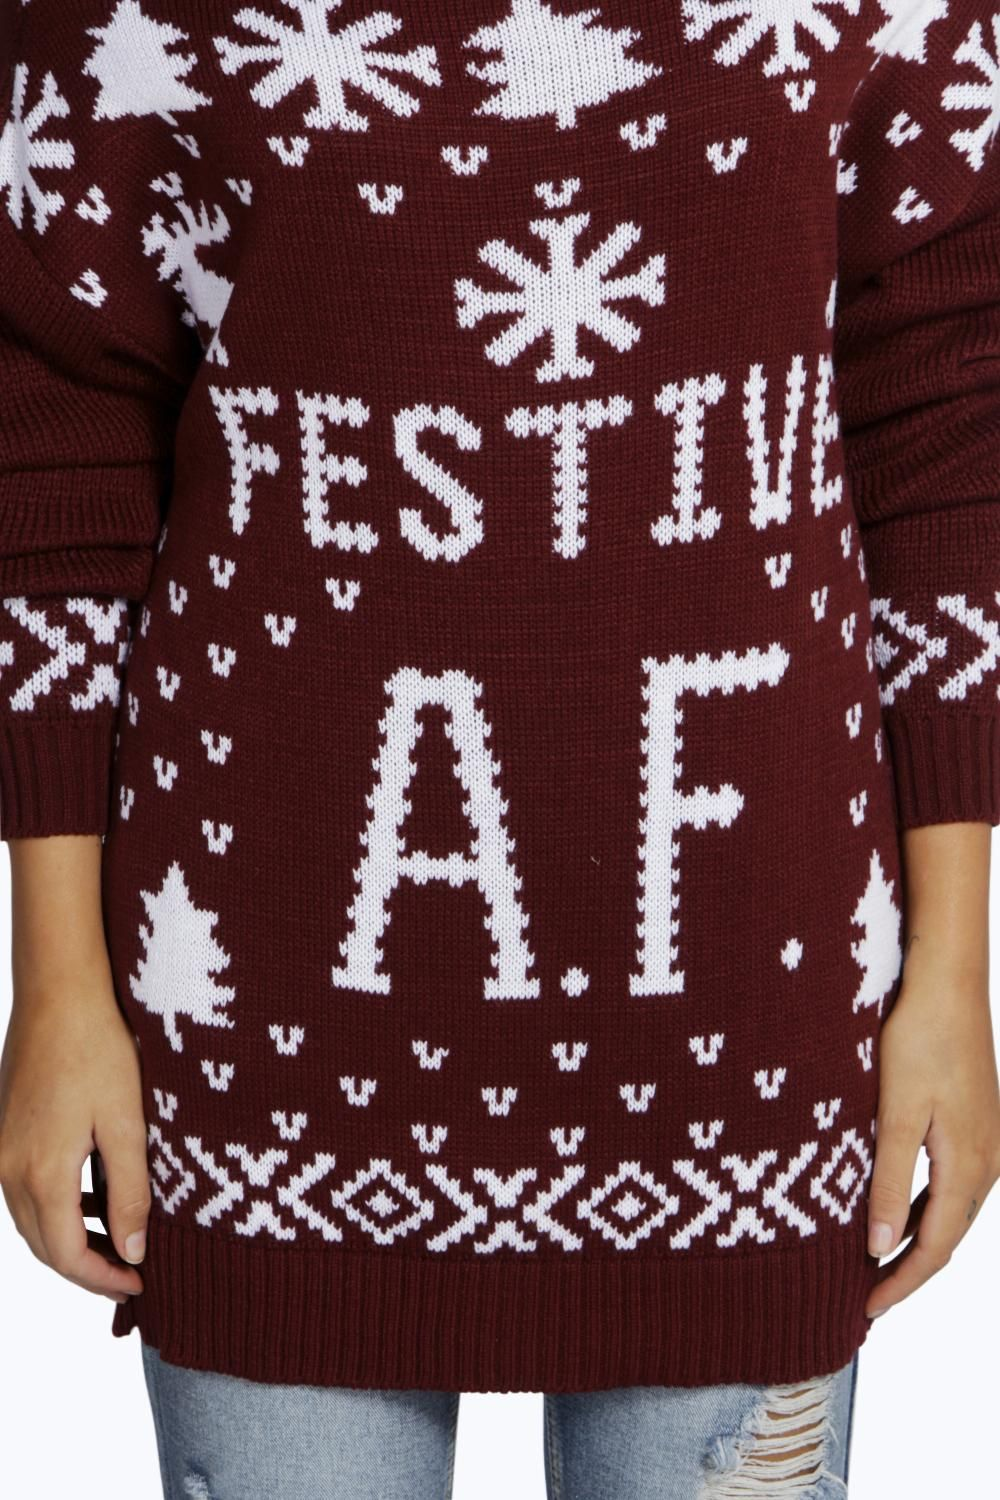 9fc67c50259ad Boohoo Womens Christmas Jumper Sweater Xmas Gift In Multi Colours & Sizes